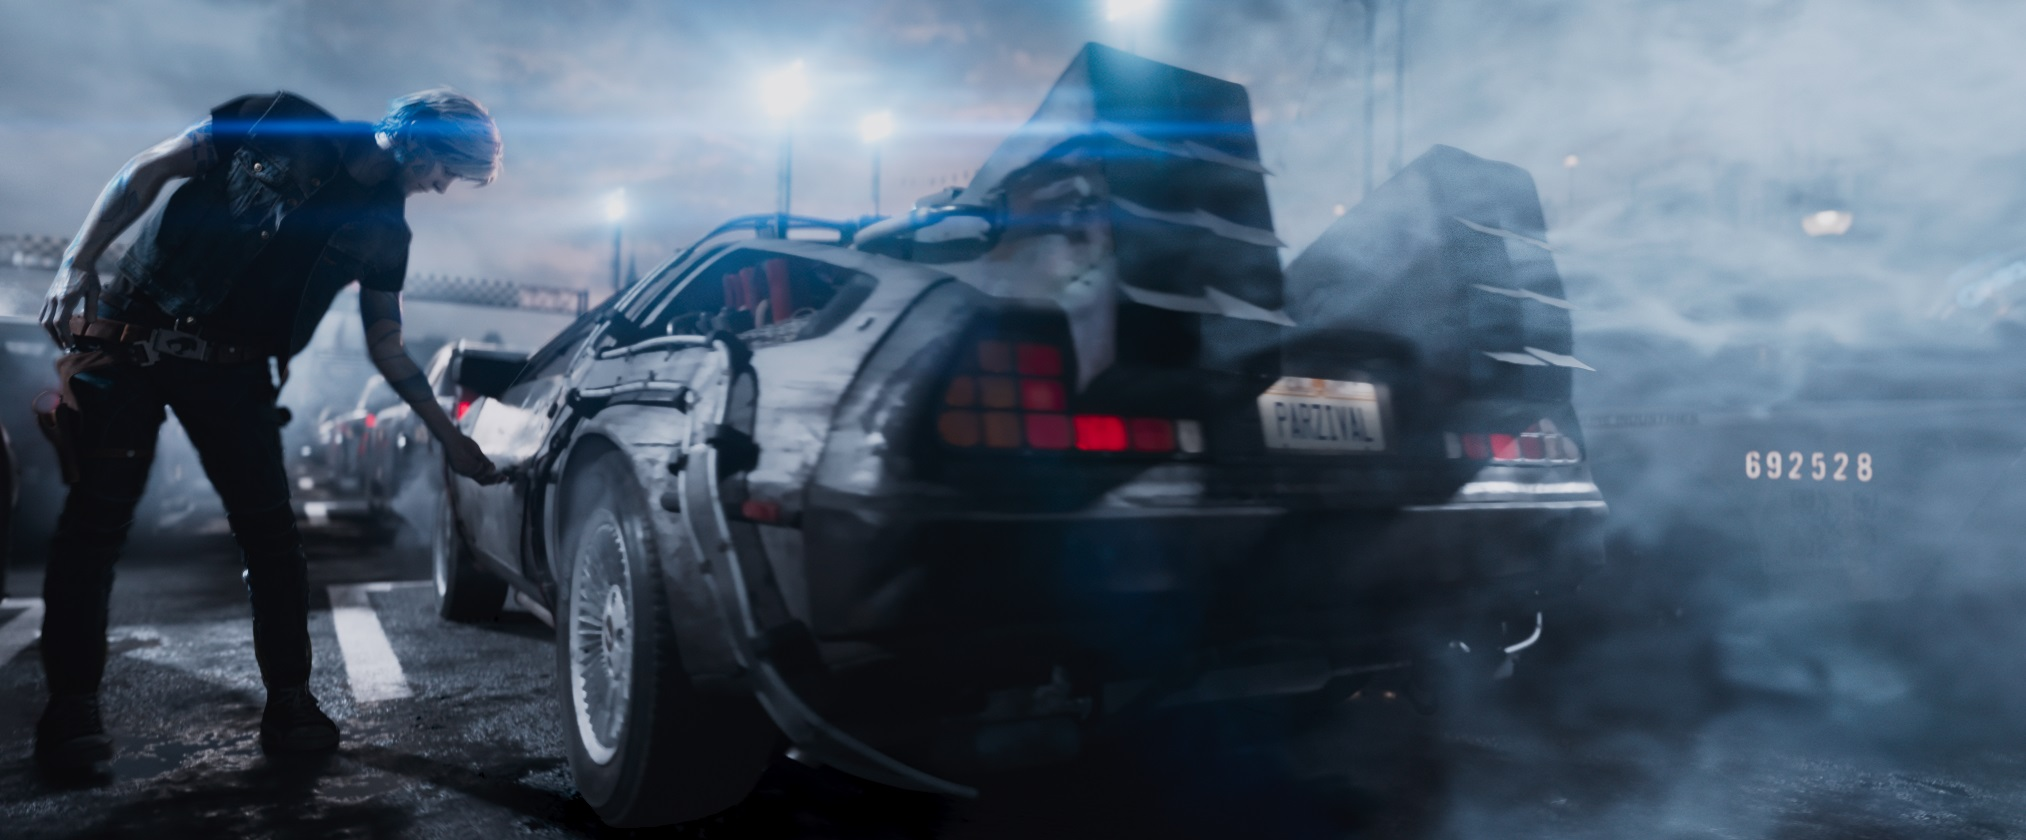 Ready Player One st 13 jpg sd high © 2018 Warner Bros Ent All Rights Reserved 1